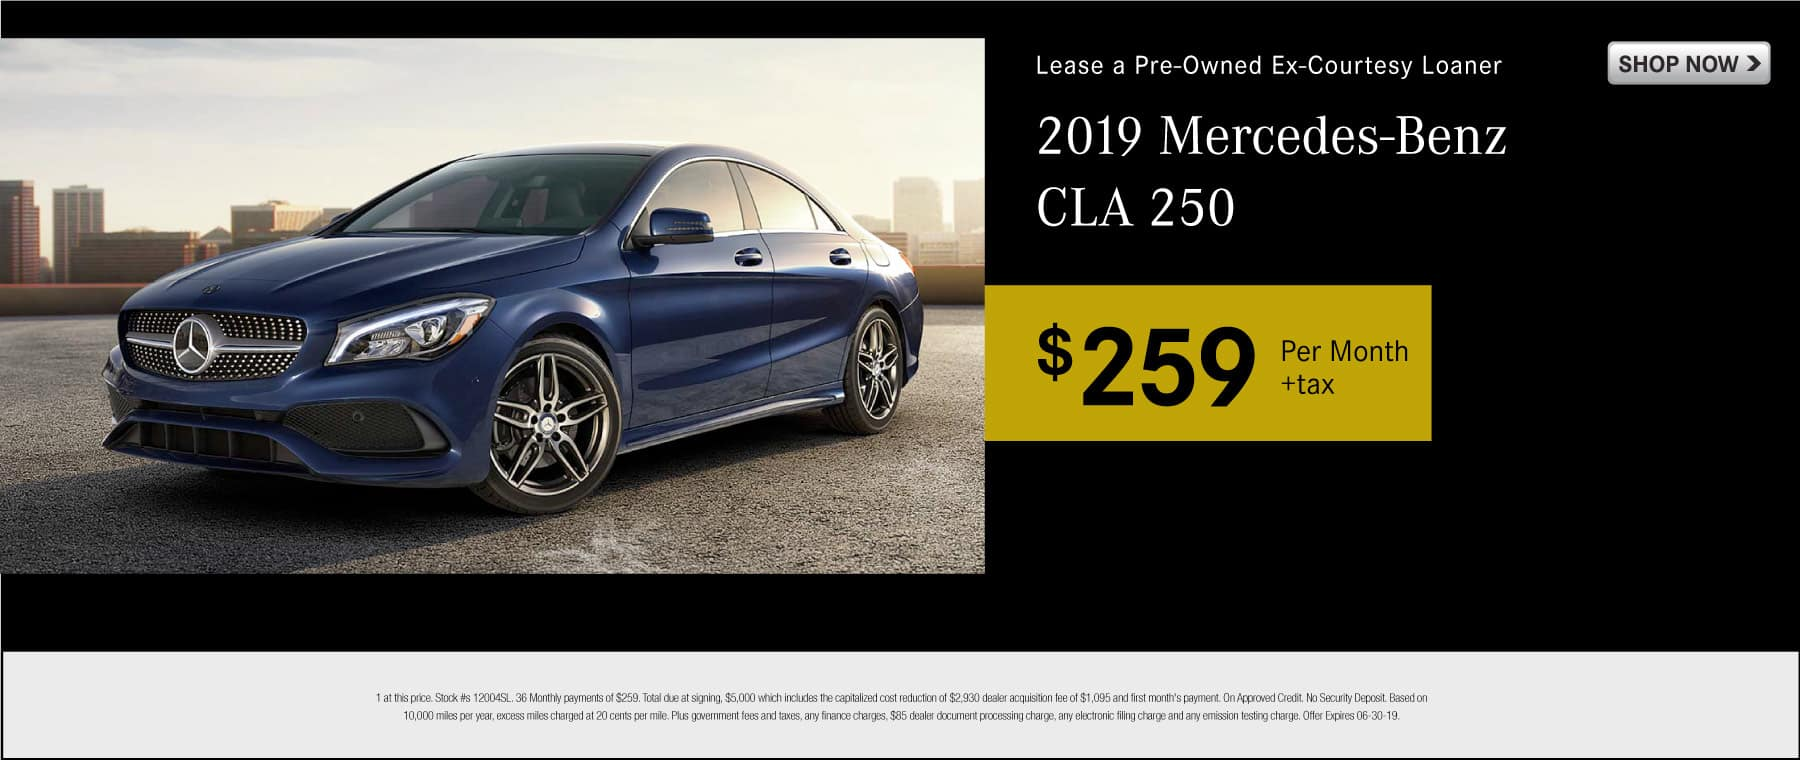 Lease a pre-owned ex-courtesy loaner 2019 Mercedes-Benz CLA 250